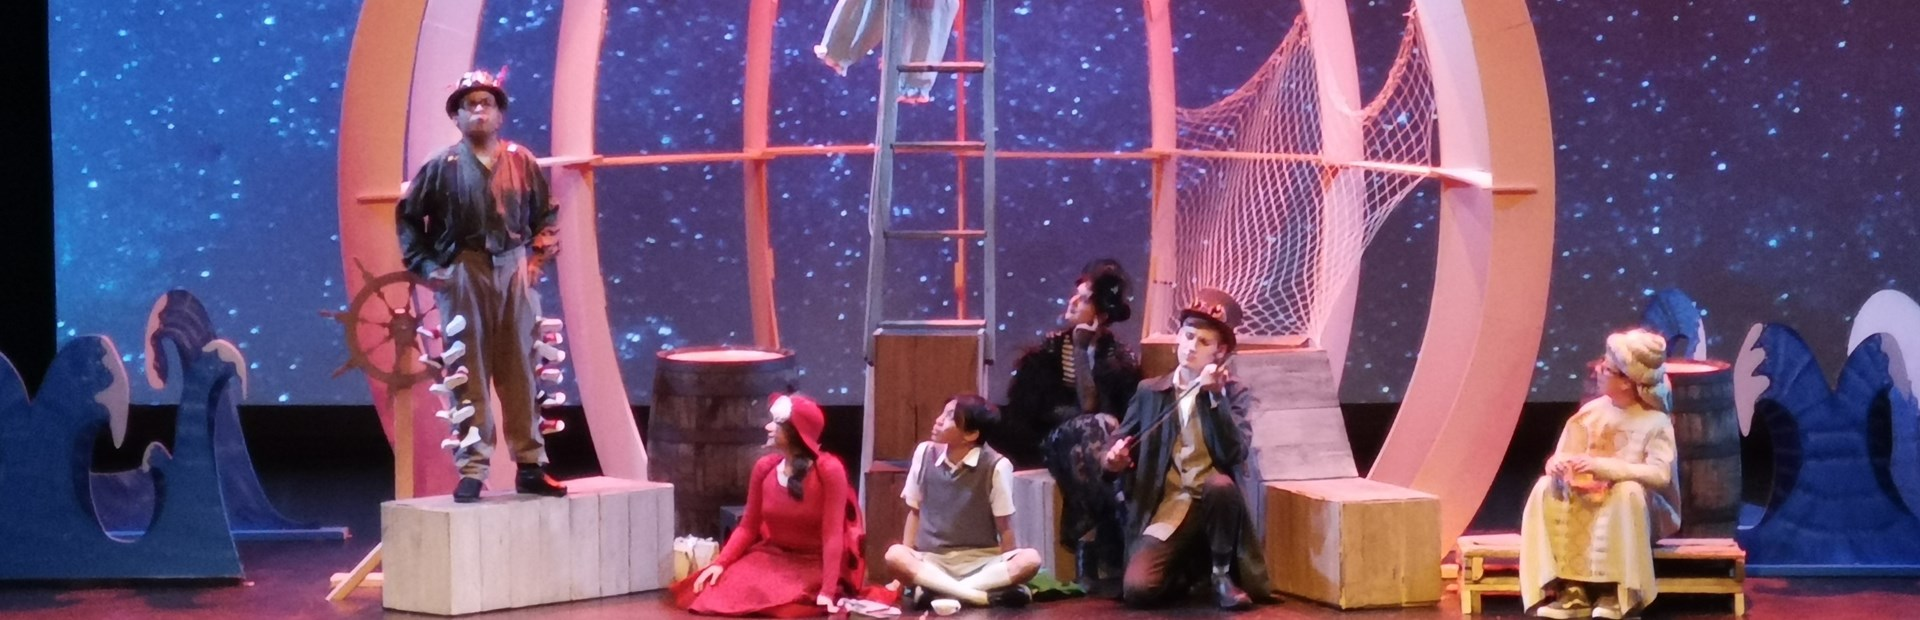 West Kildonan Collegiate's James and the Giant Peach Production